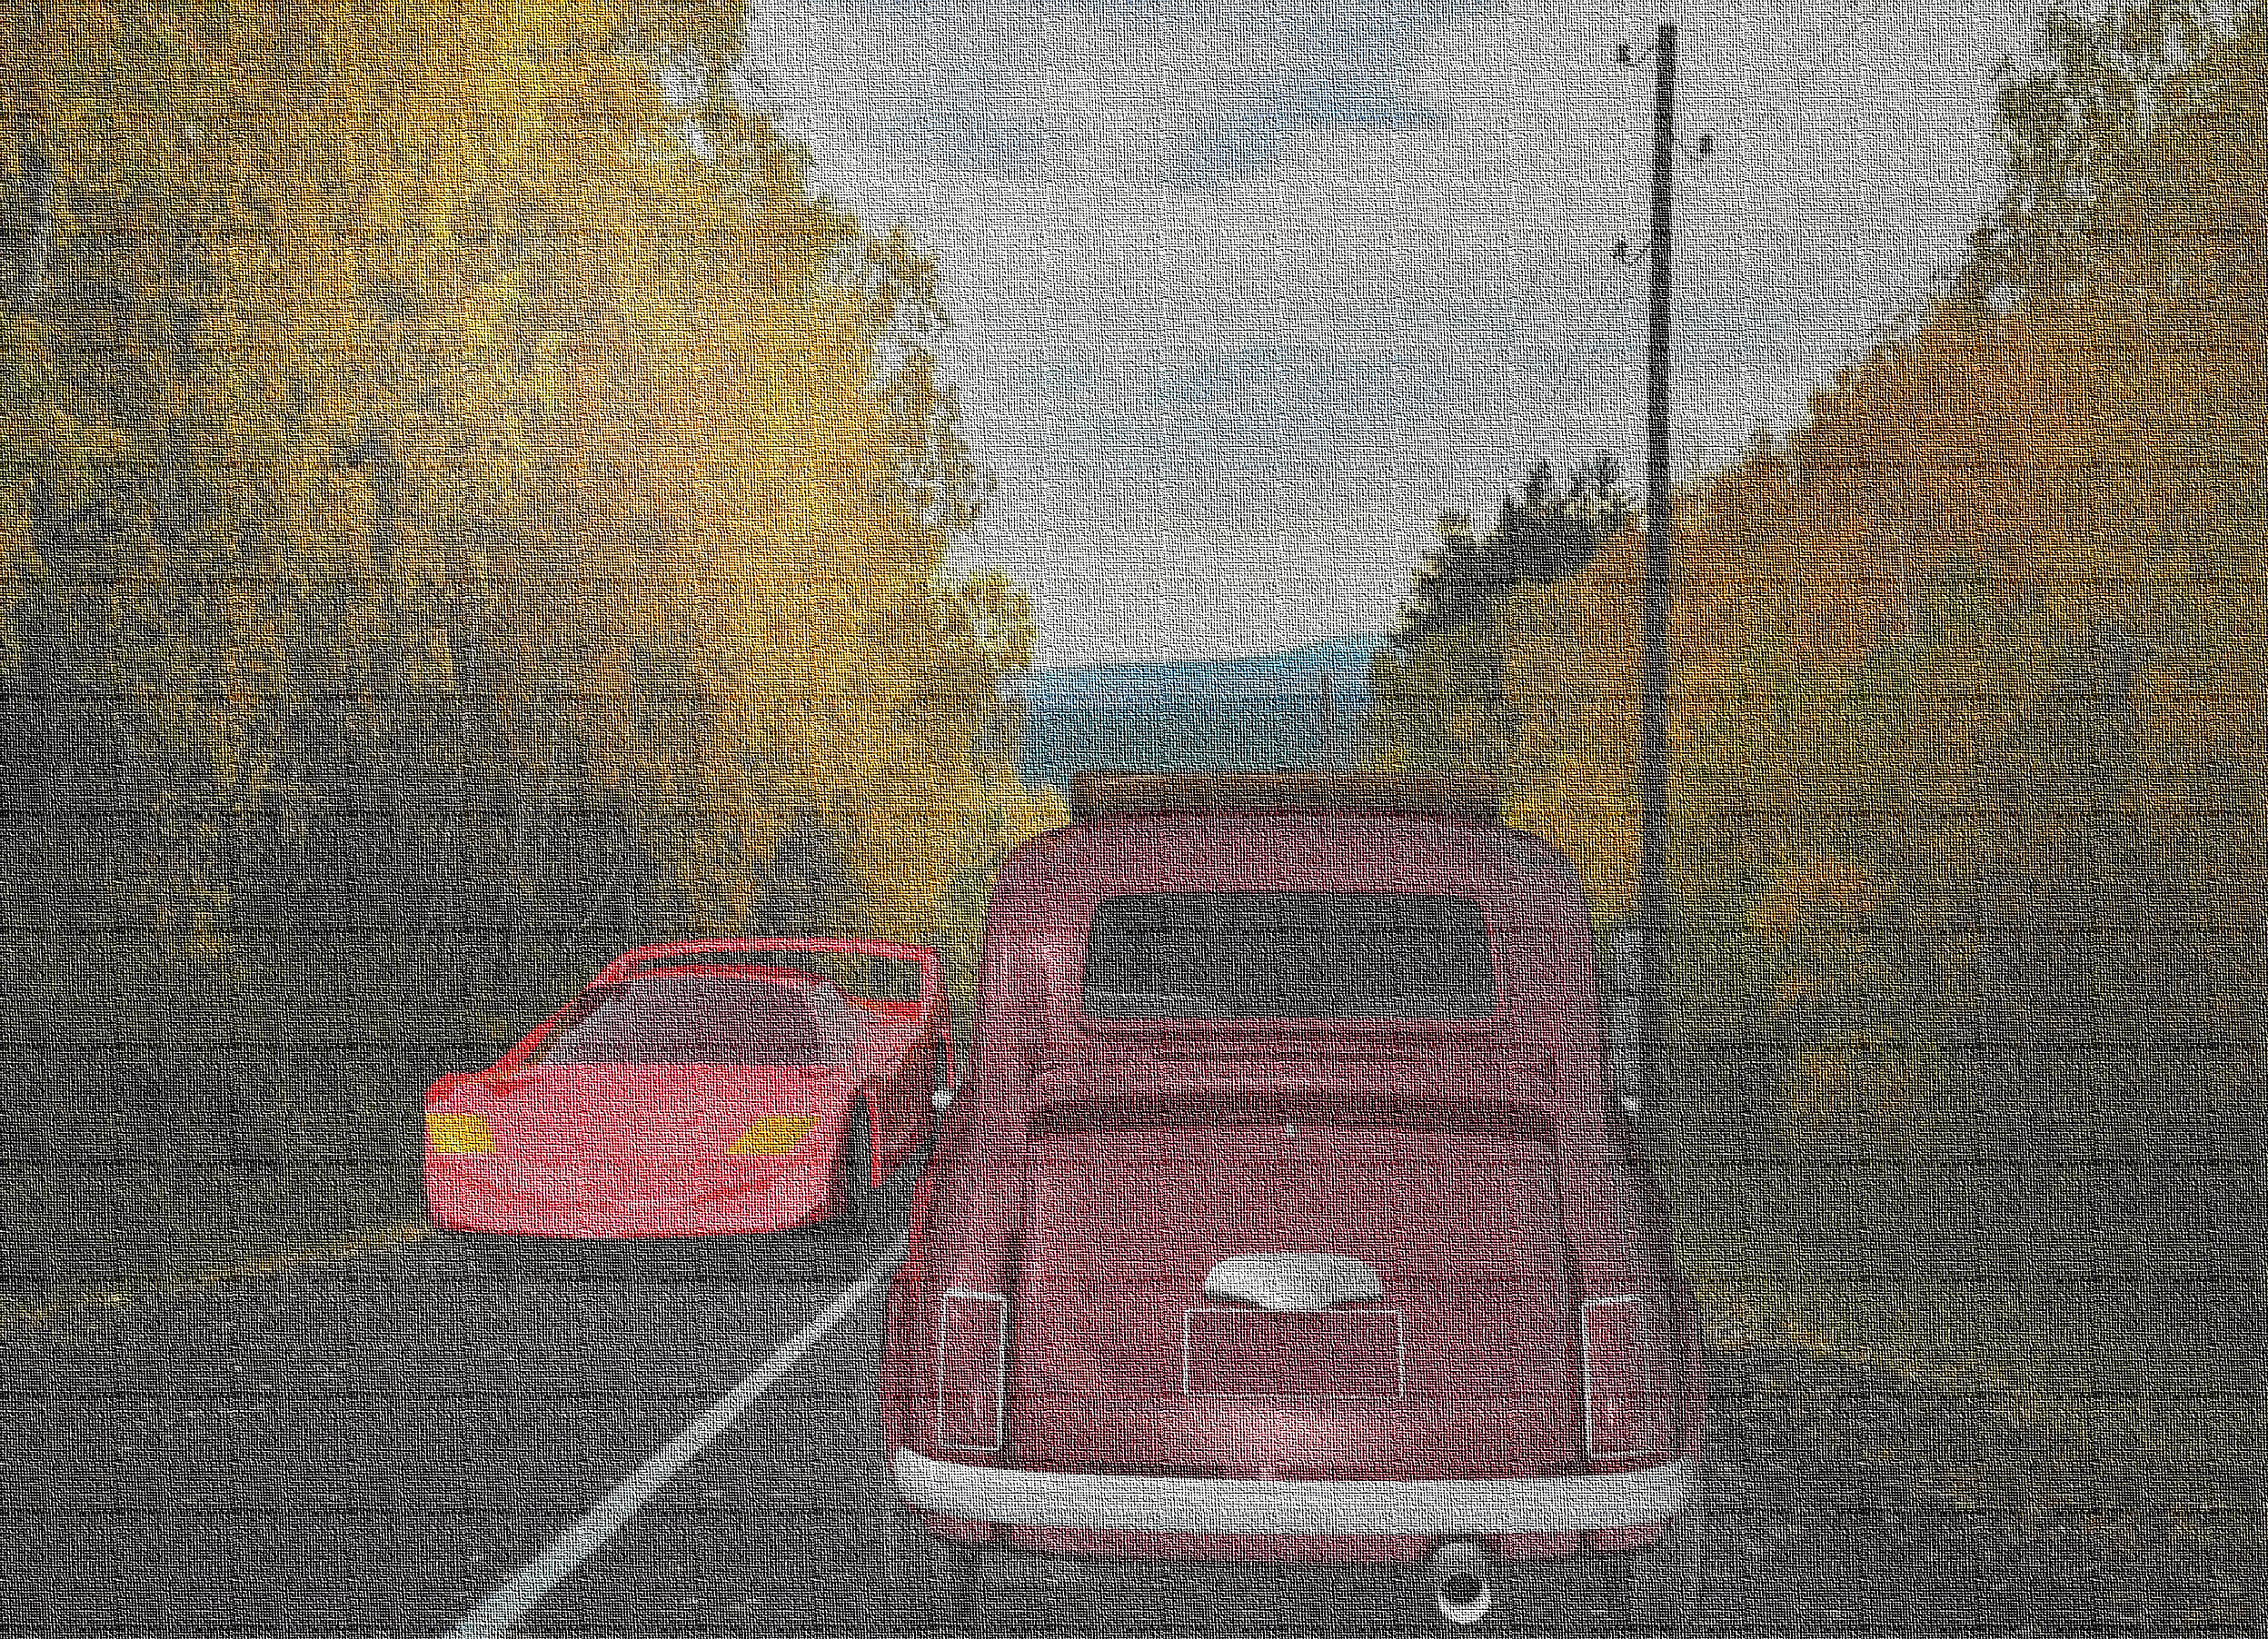 Input text: The first car is on the road. The first car is shiny red. There is a second car 2 feet in front of the first car. The second car is 2 feet to the right. The second car is facing the north